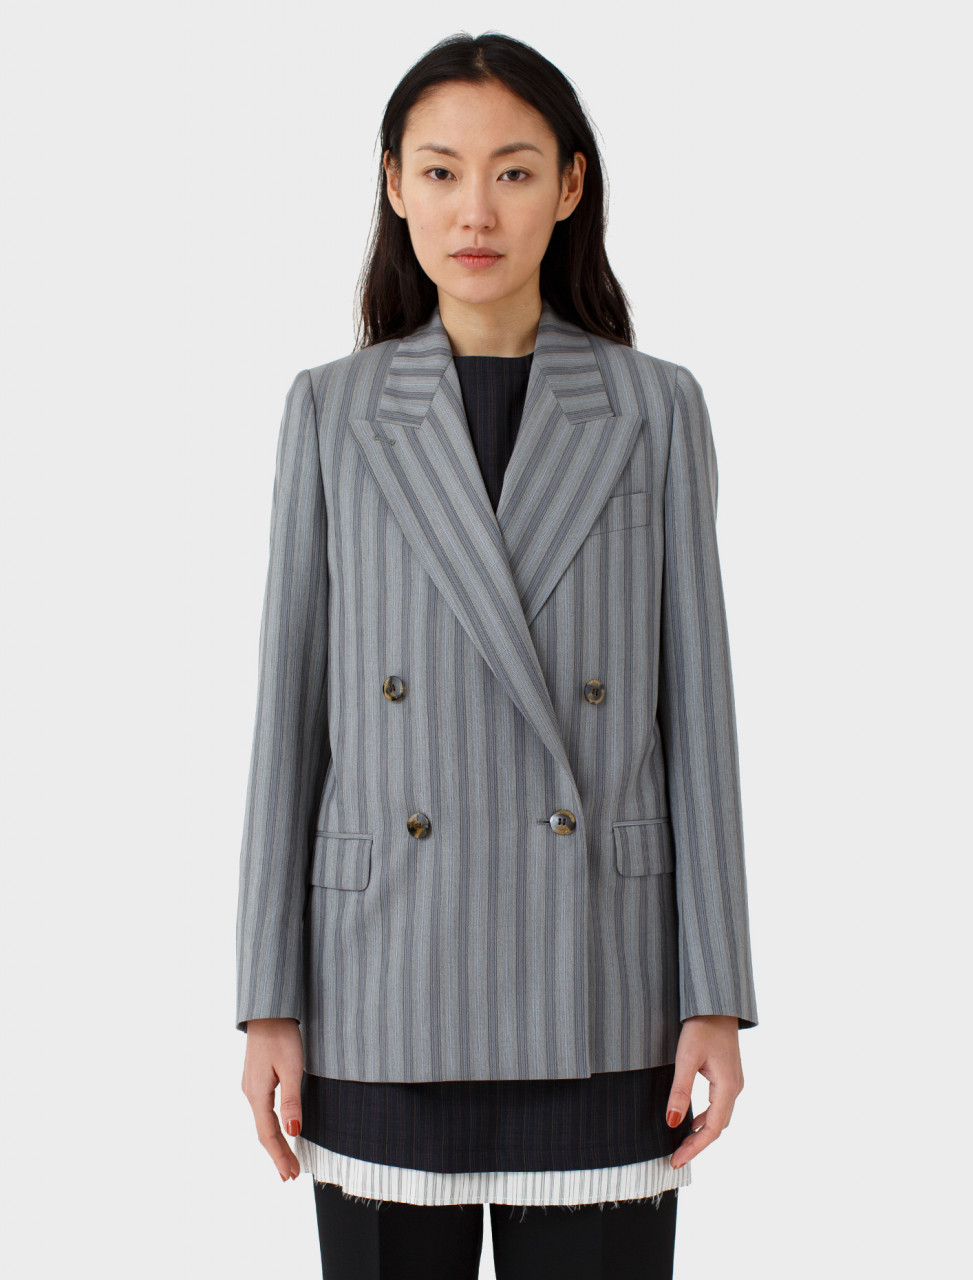 FN-WN-SUIT000130